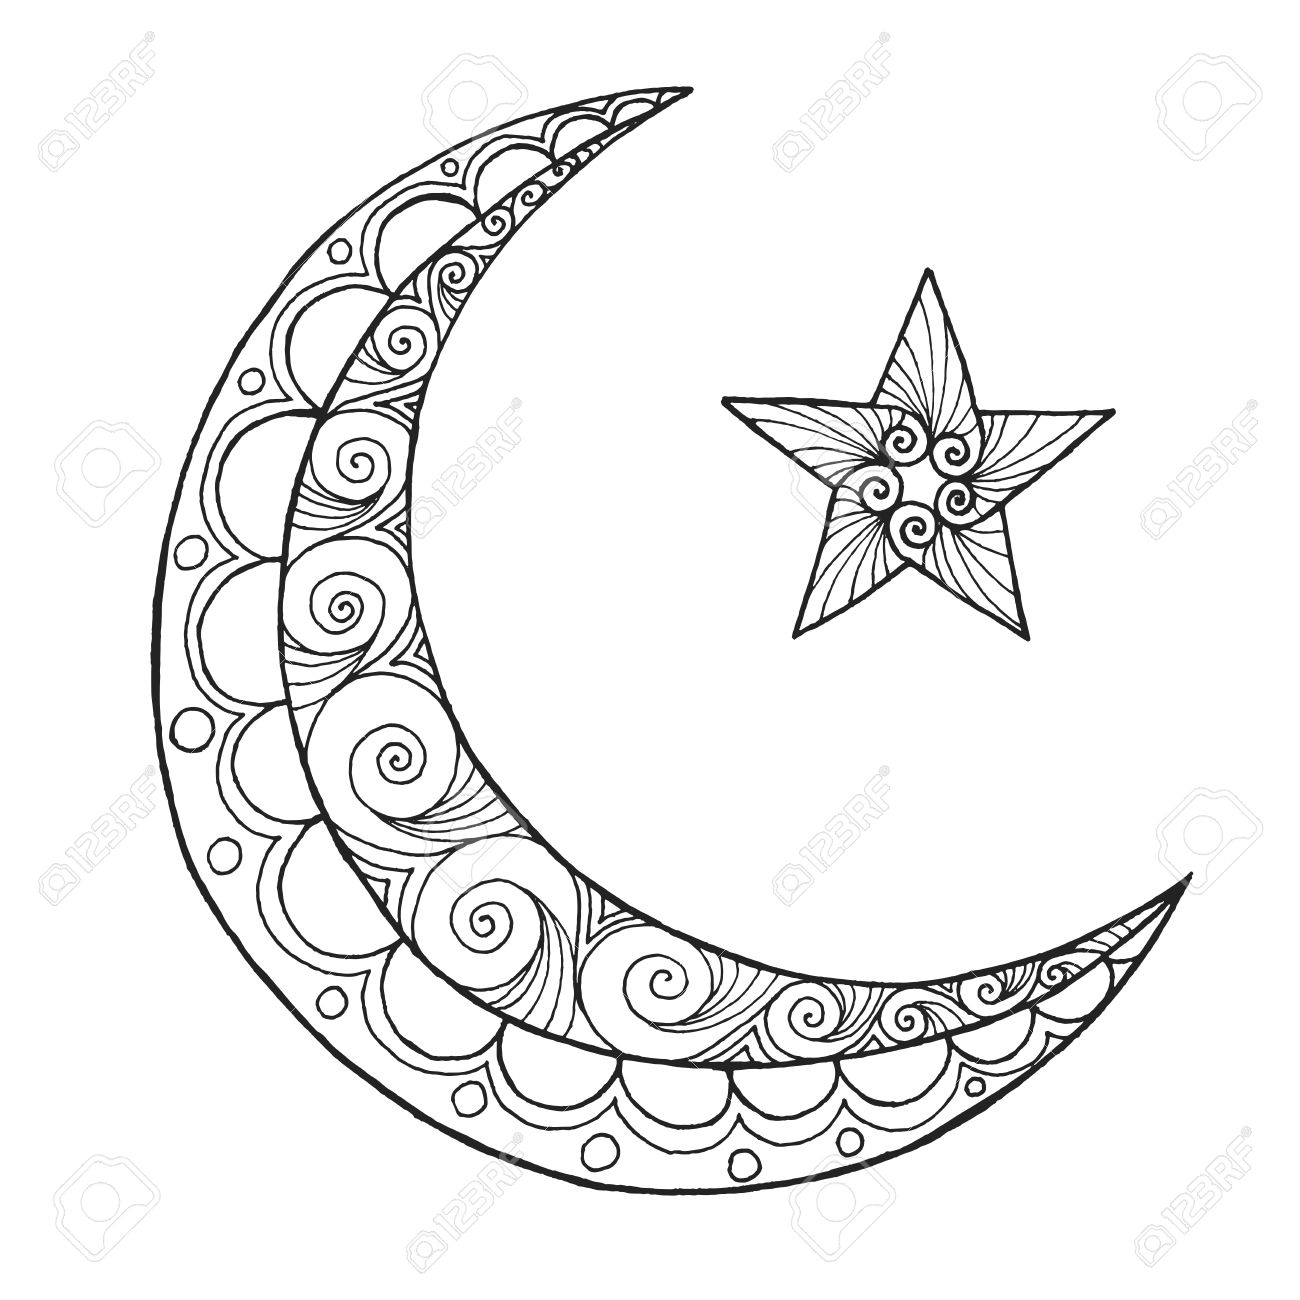 Crescent Moon Coloring Page At Getcolorings